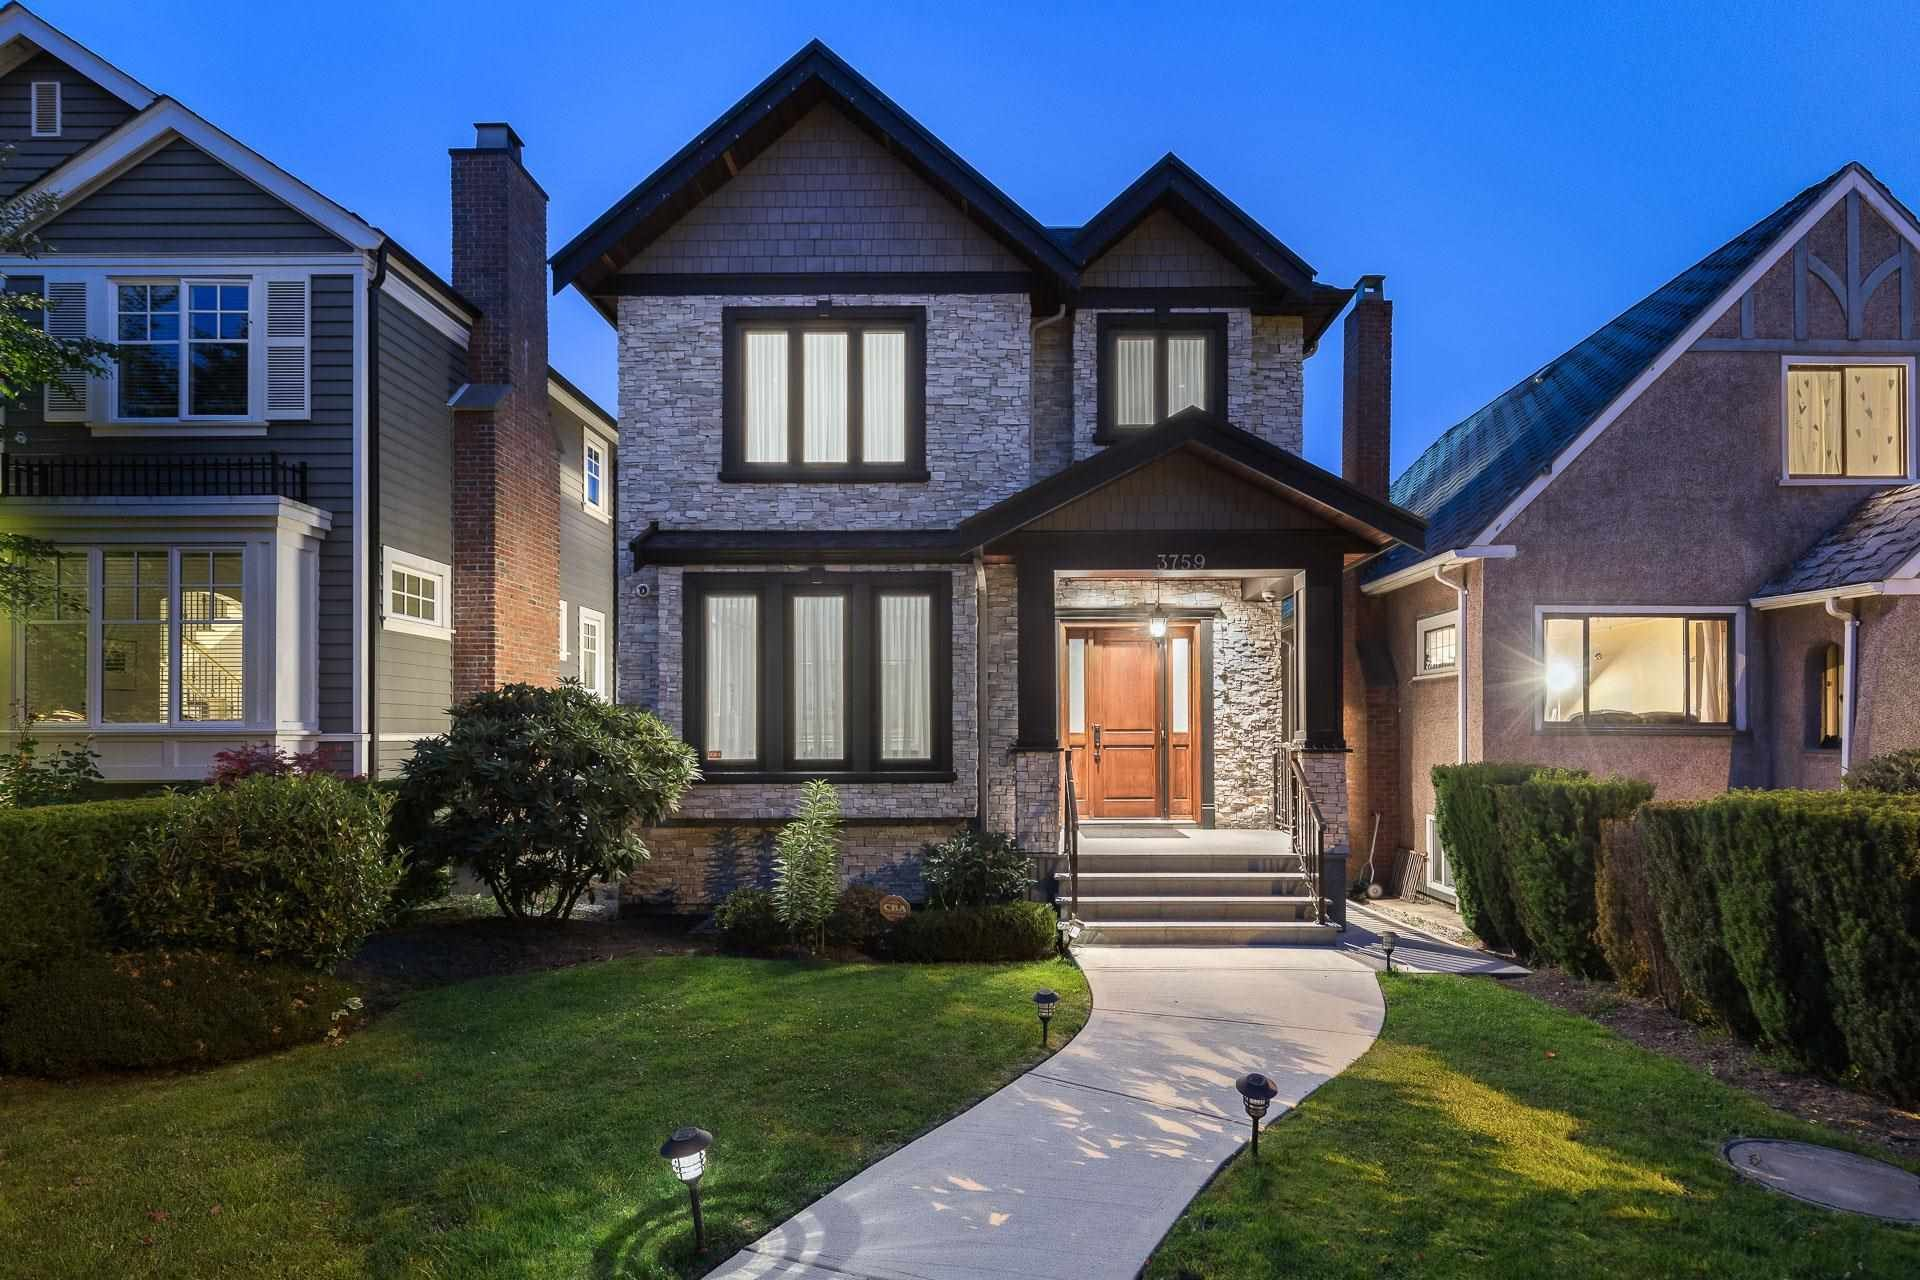 Main Photo: 3759 W 20 Avenue in Vancouver: Dunbar House for sale (Vancouver West)  : MLS®# R2625102